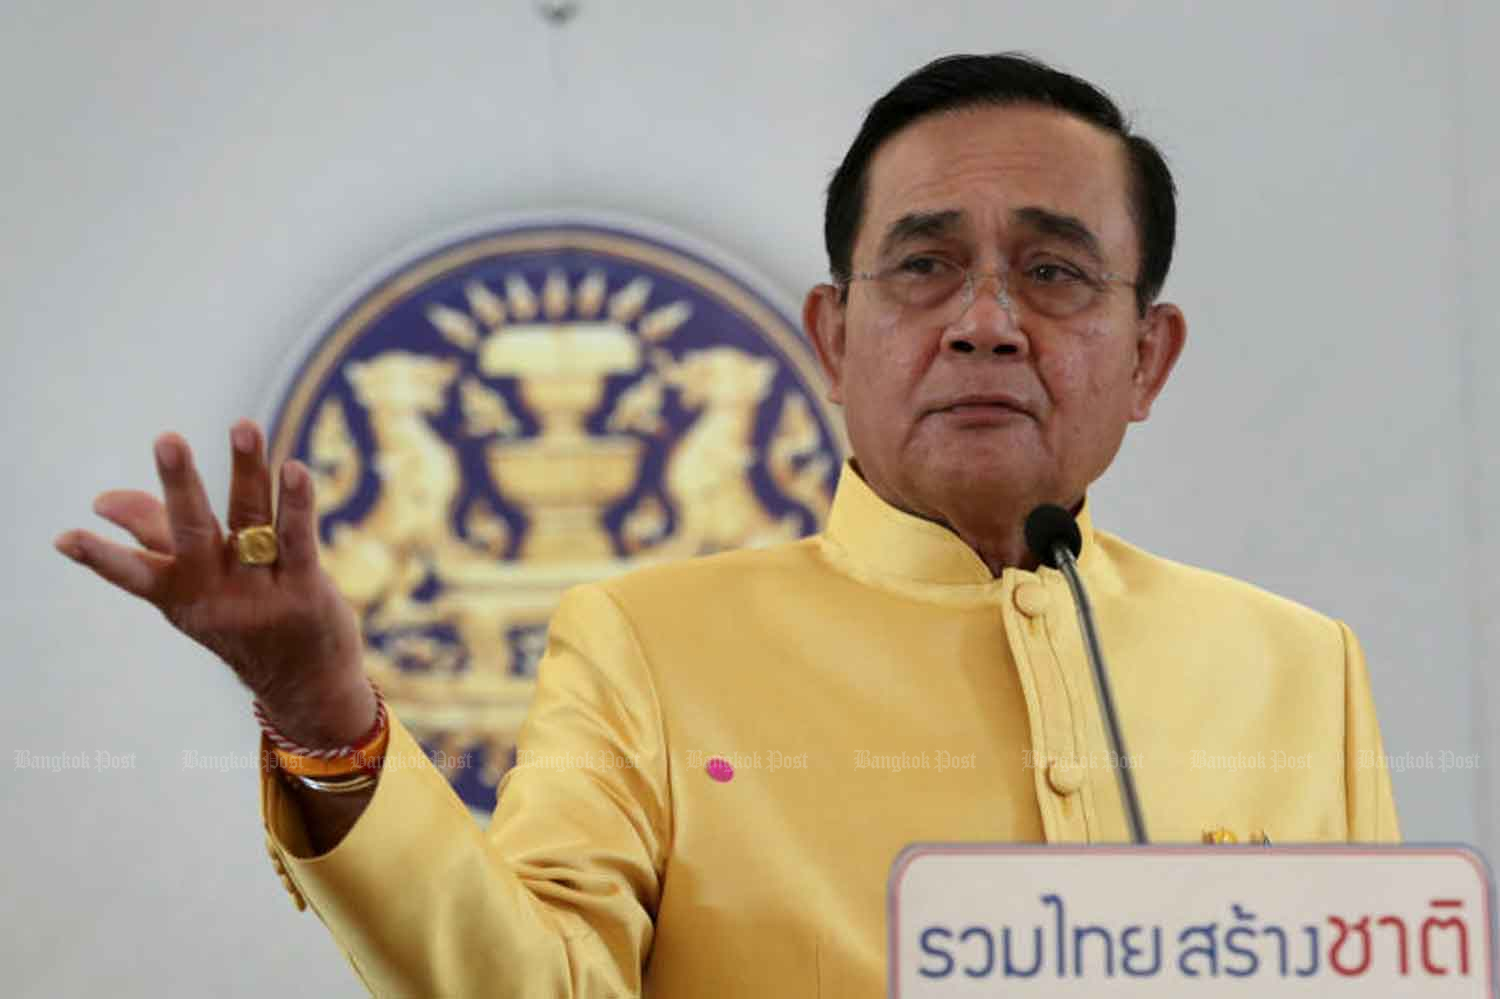 Prime Minister Prayut Chan-o-cha is targeted by the opposition in a censure debate over his handling of the coronavirus outbreak. (Bangkok Post photo)